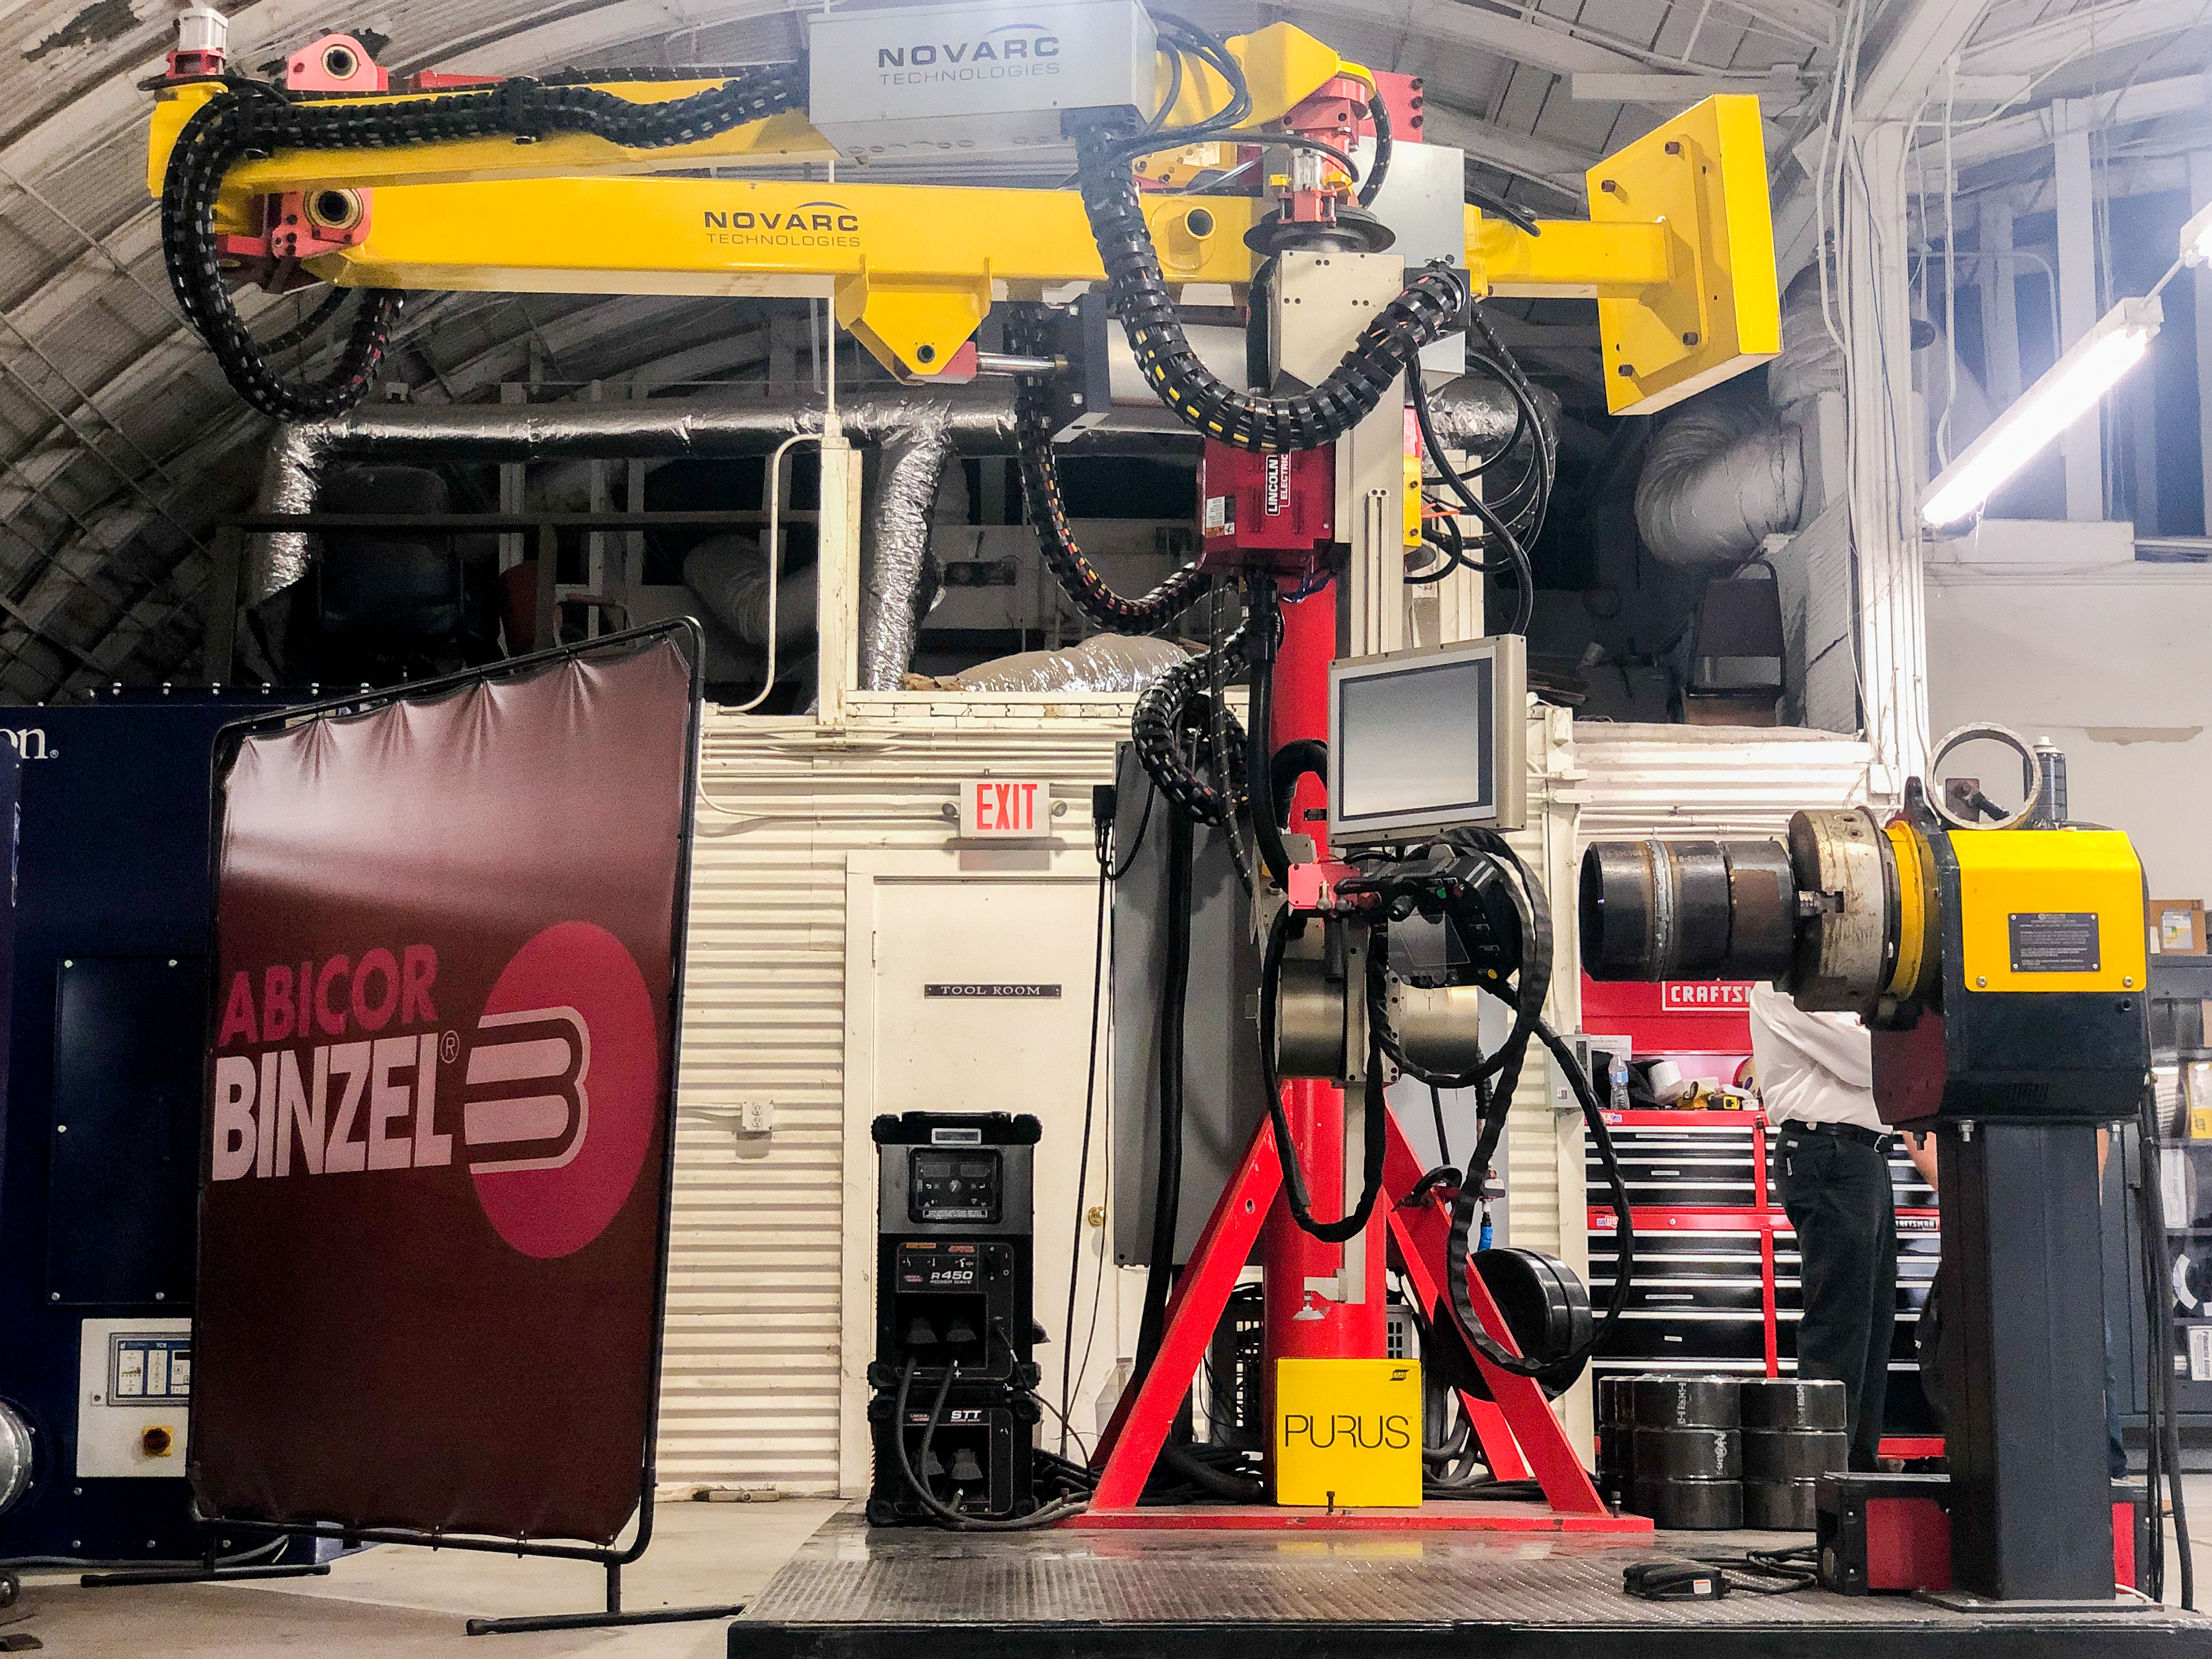 The Novarc Spool Welding Robot at the Red Ball Oxygen Welding Lab